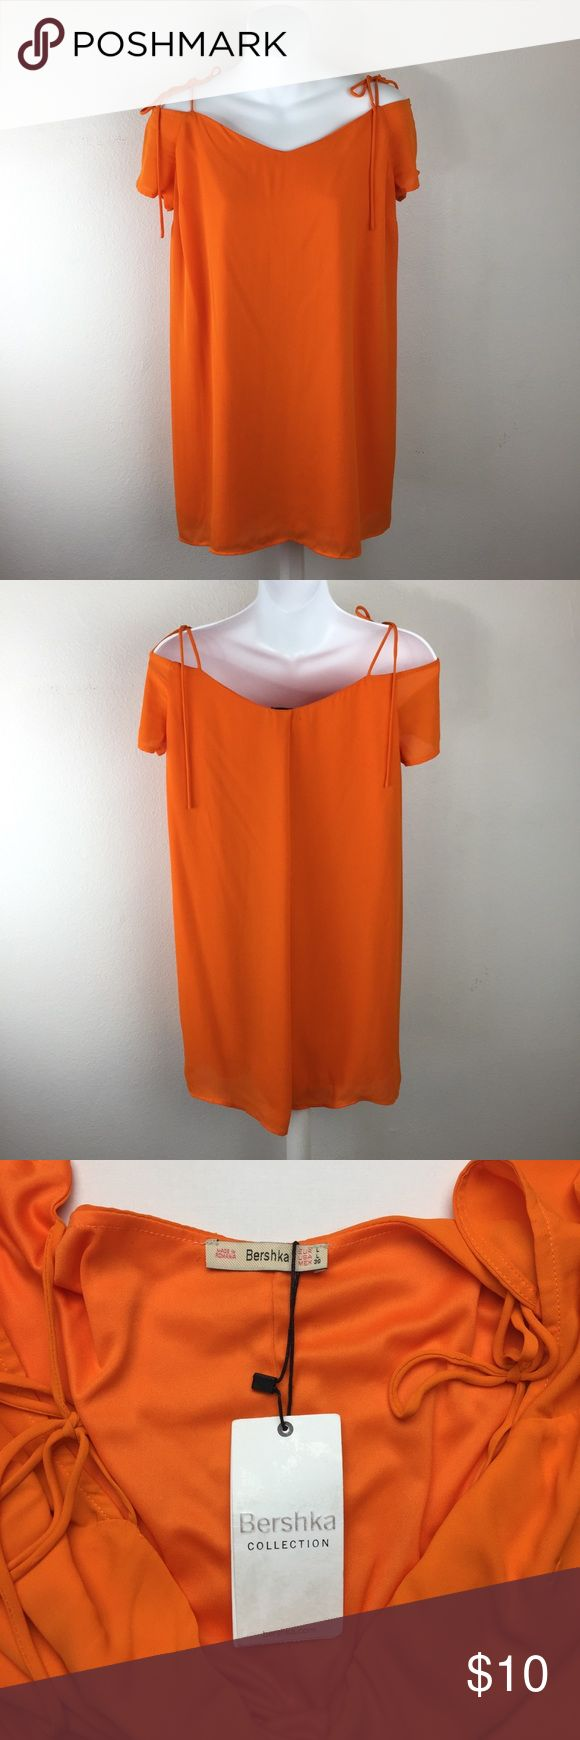 Bershka Tunic/Dress Bershka Collection Large Tunic/Dress Off/Cold Shoulder Orange tie Bershka Dresses Midi